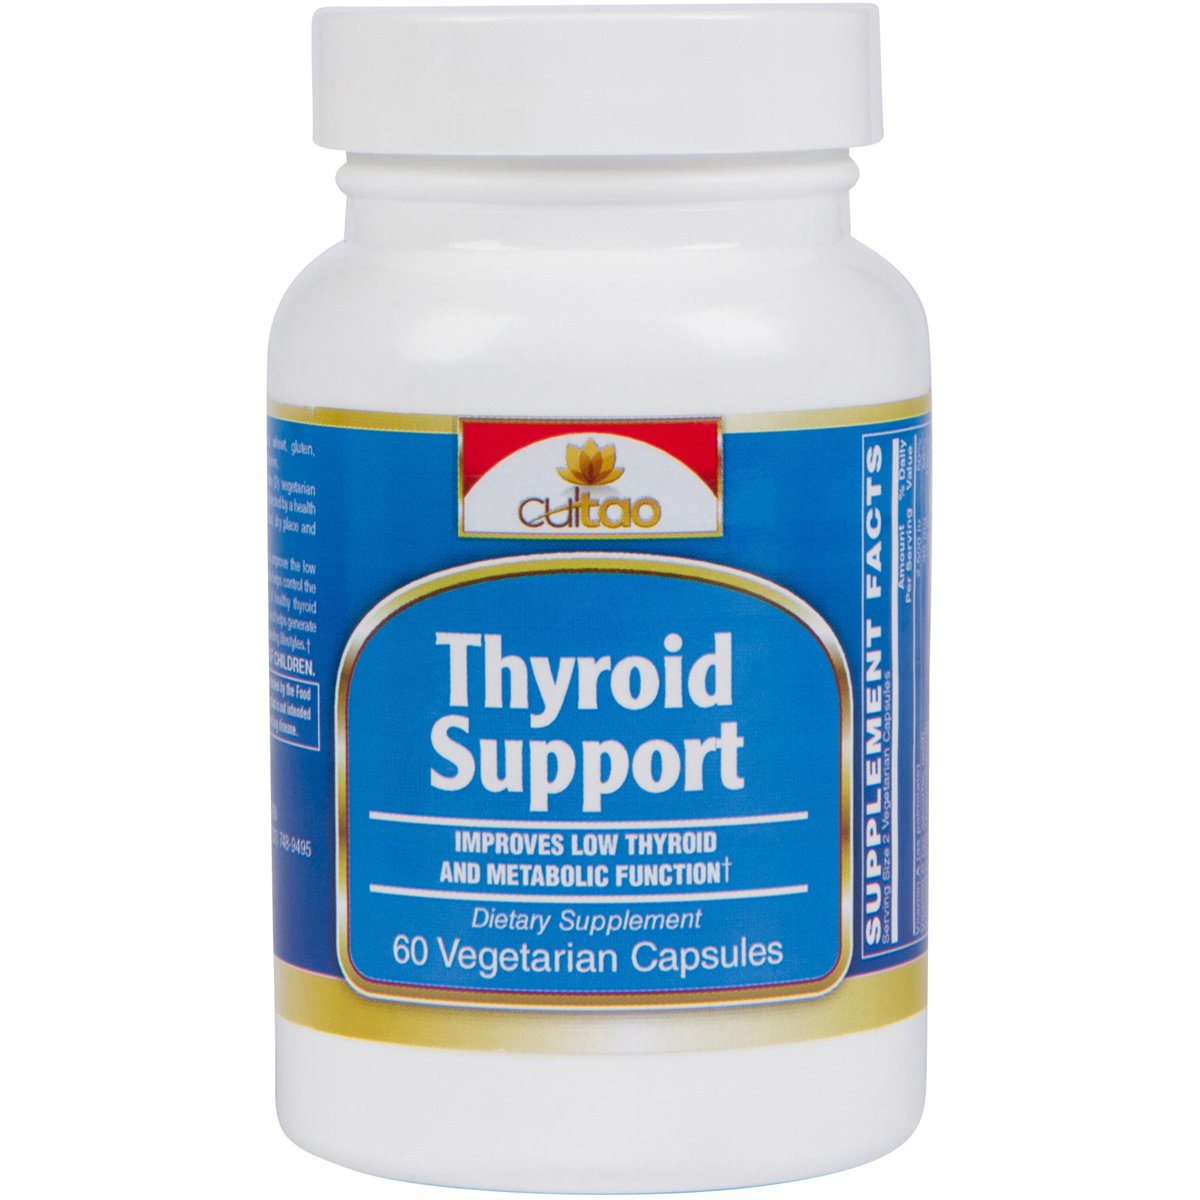 Premium Thyroid Support Supplements w/L-Tyrosine, Iodine (From Kelp), Green Tea Leaf Extract, Guggulipid, Bacopa monniera, Selenium And Vitamin A, B6, C & D - 60 Vcaps - Vegetarian Formula